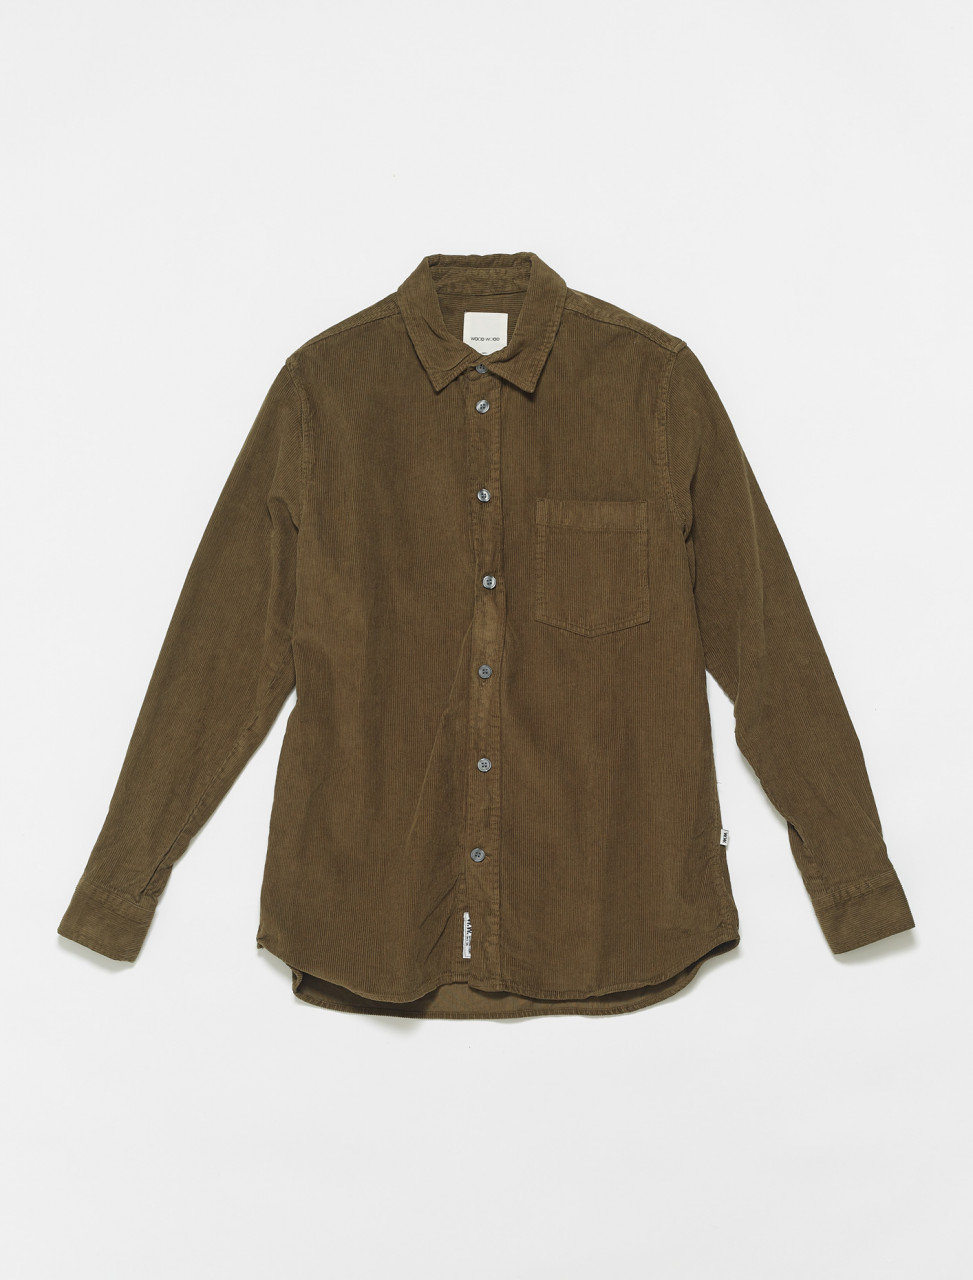 325-12035305-5233-8003 WOOD WOOD ASKE SHIRT DARK GREEN